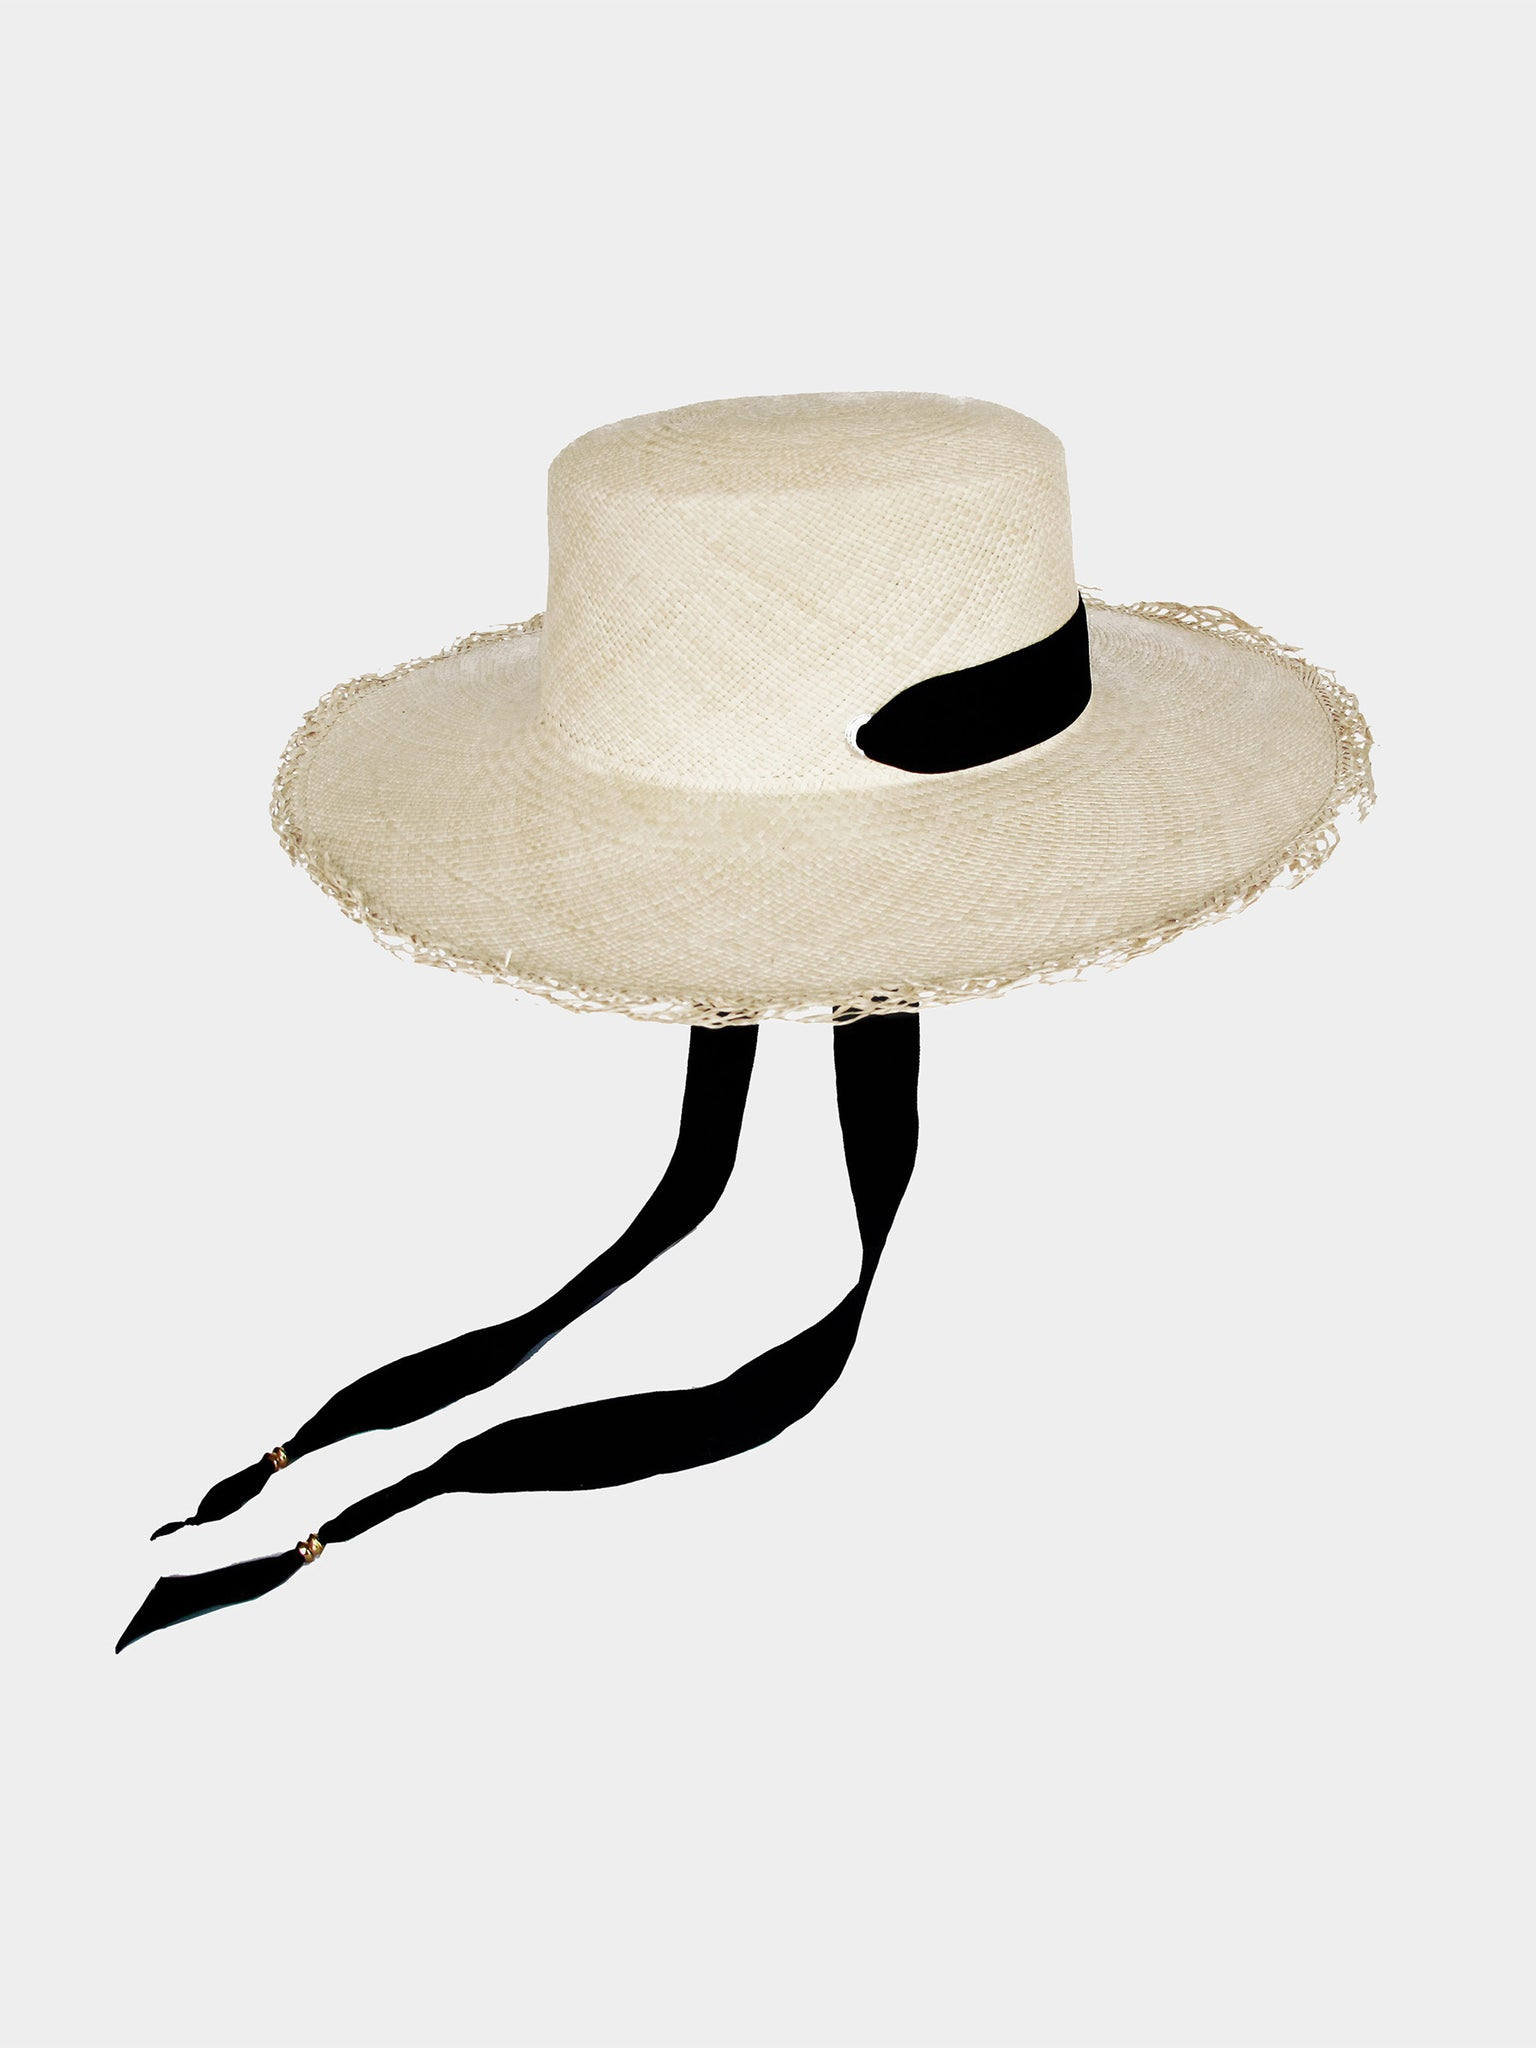 Alexis Dima Hat in Sand from Spring Summer 2020 Accessories Collection